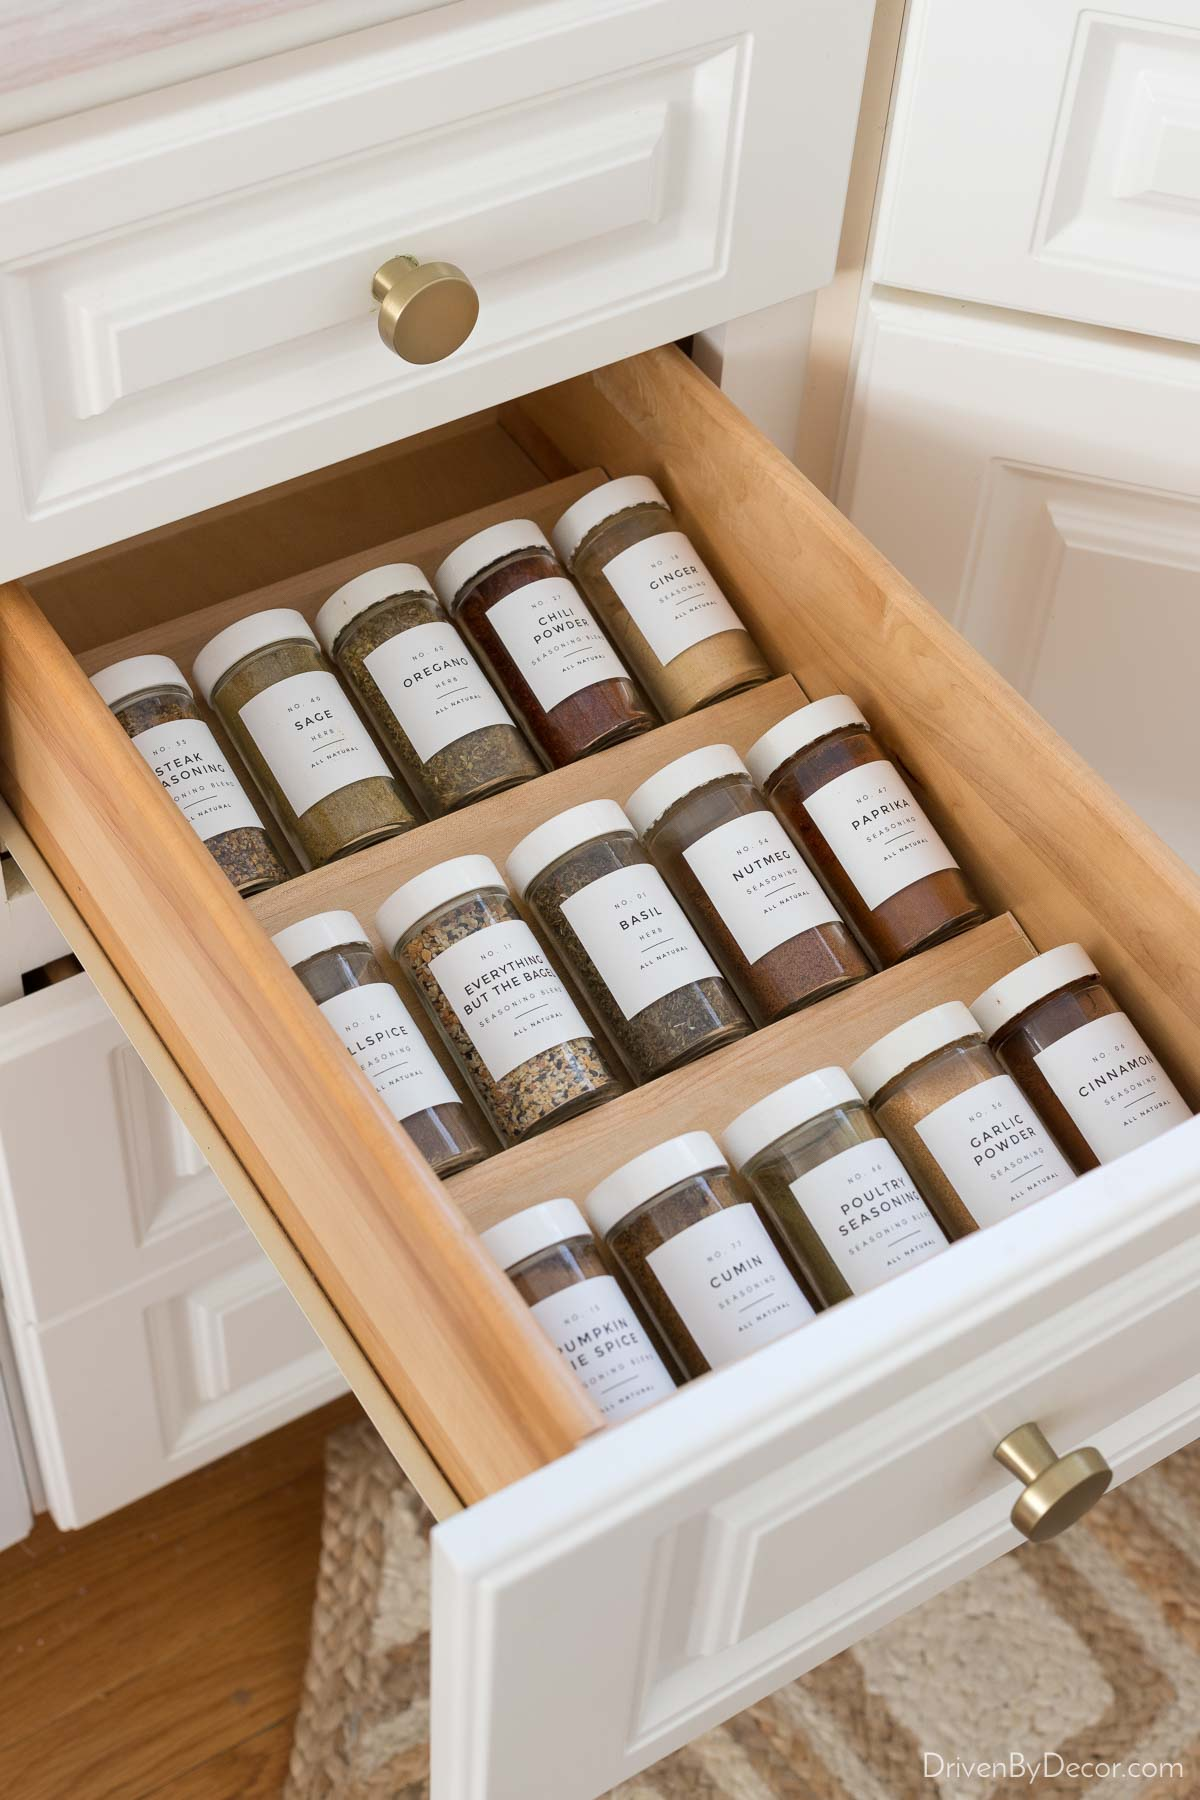 This wood kitchen drawer spice organizer makes your spices so easy to find!